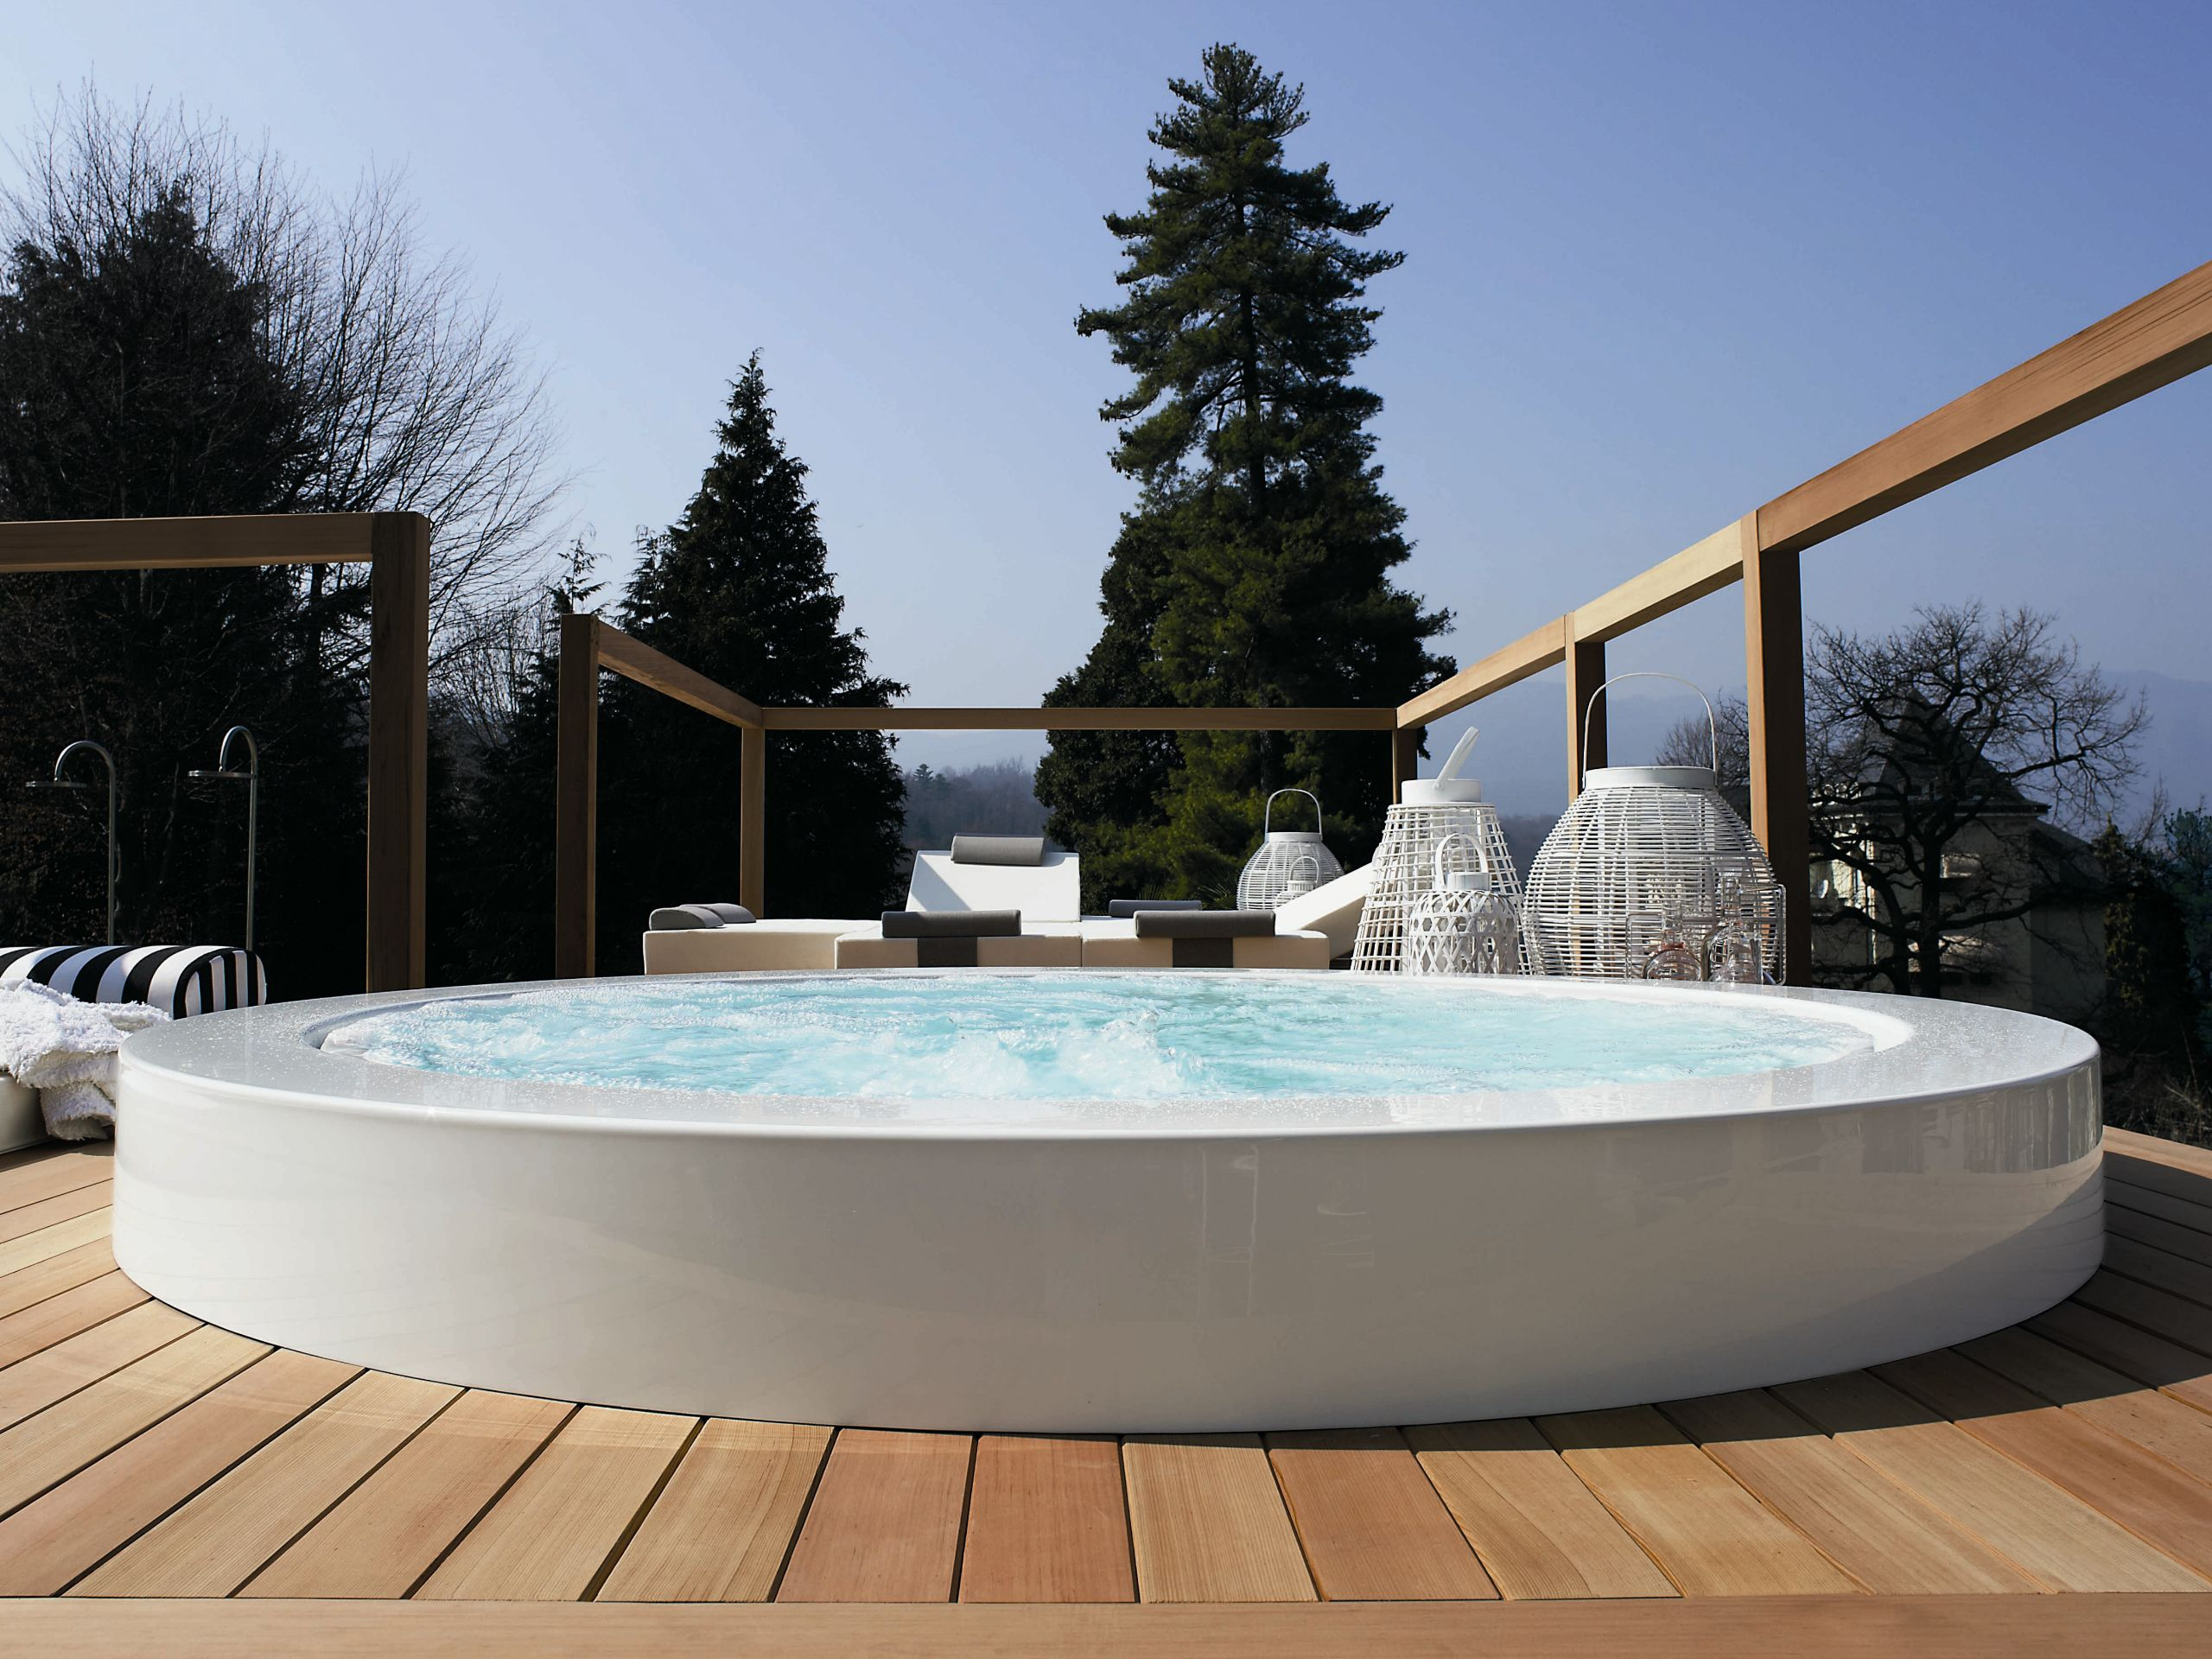 Overflow Outdoor Hot Tub MINIPOOL | Built In Hot Tub   @zucchettikos | Out  | Pinterest | Outdoor Hot Tubs, Hot Tubs And Tubs